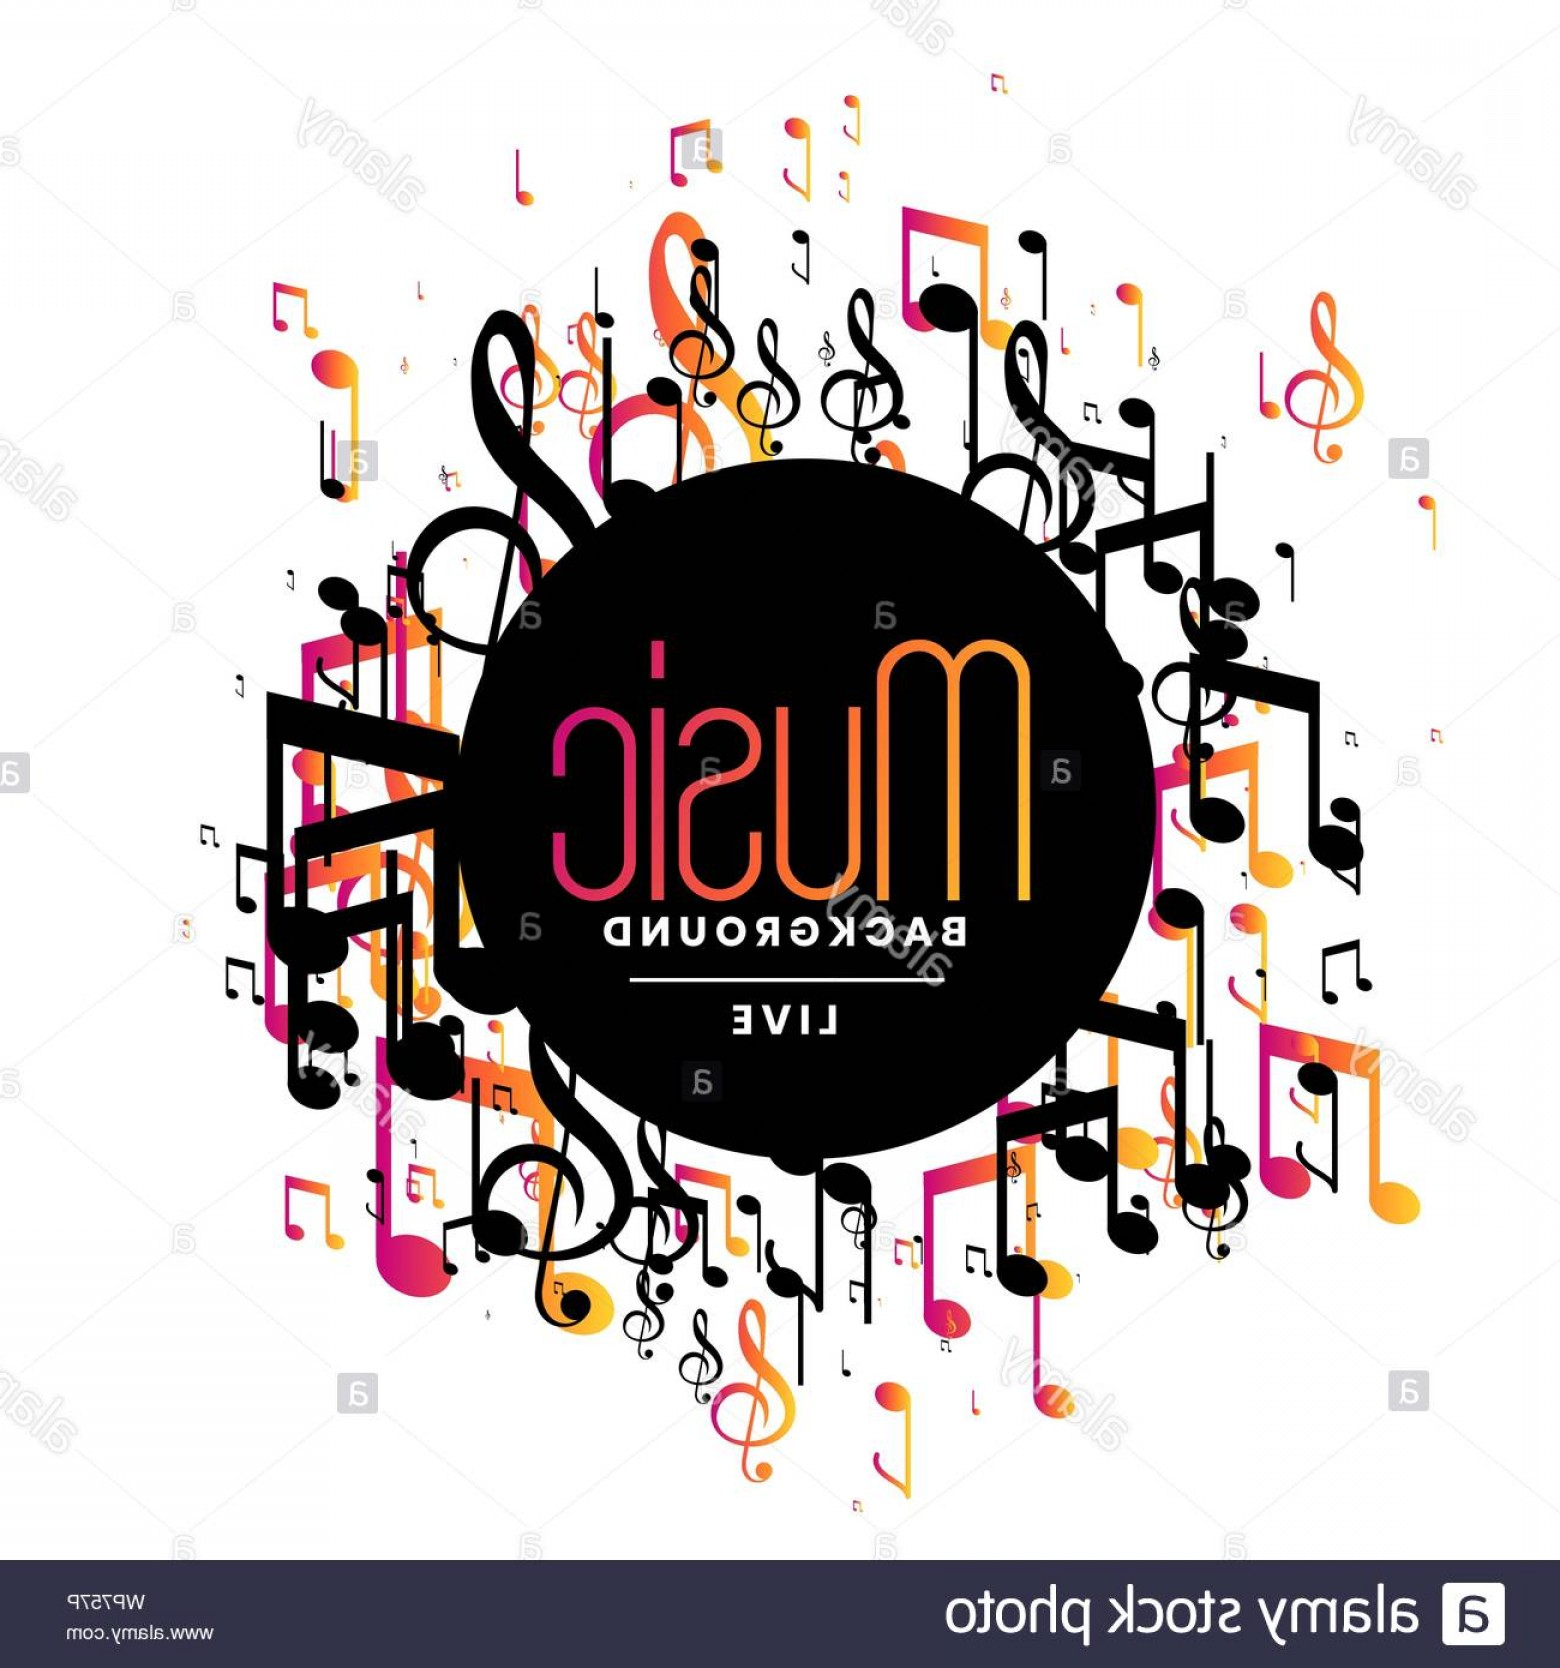 Musical Vector Artwork: Abstract Music Background With Musical Notes Design Image